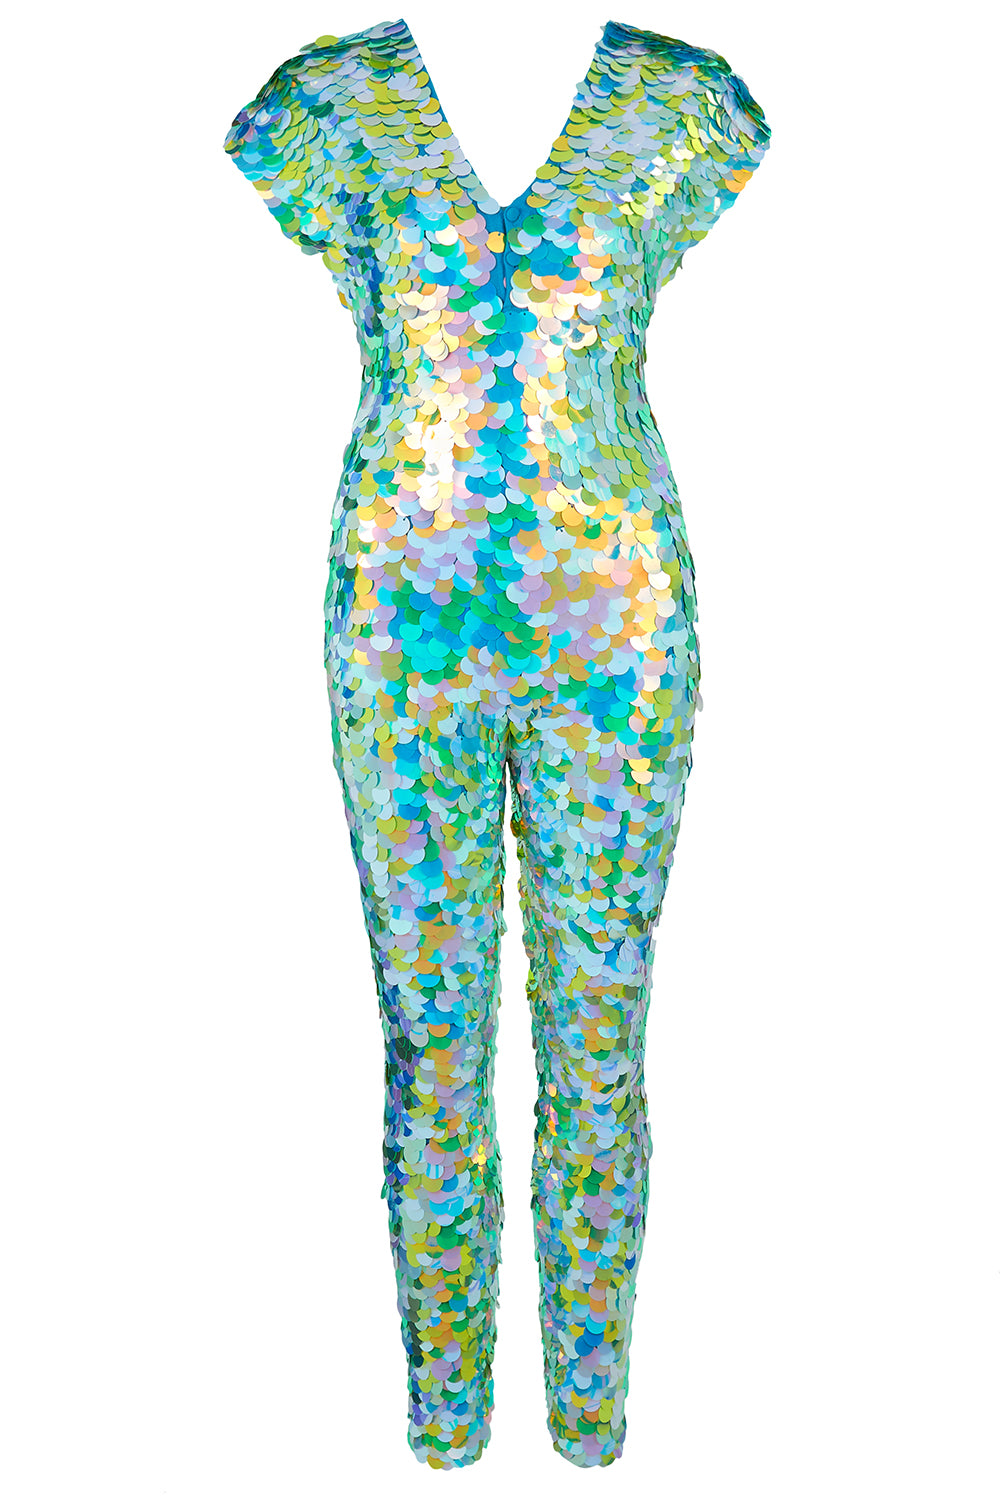 Jumpsuit covered in large round iridescent green and blue sequins